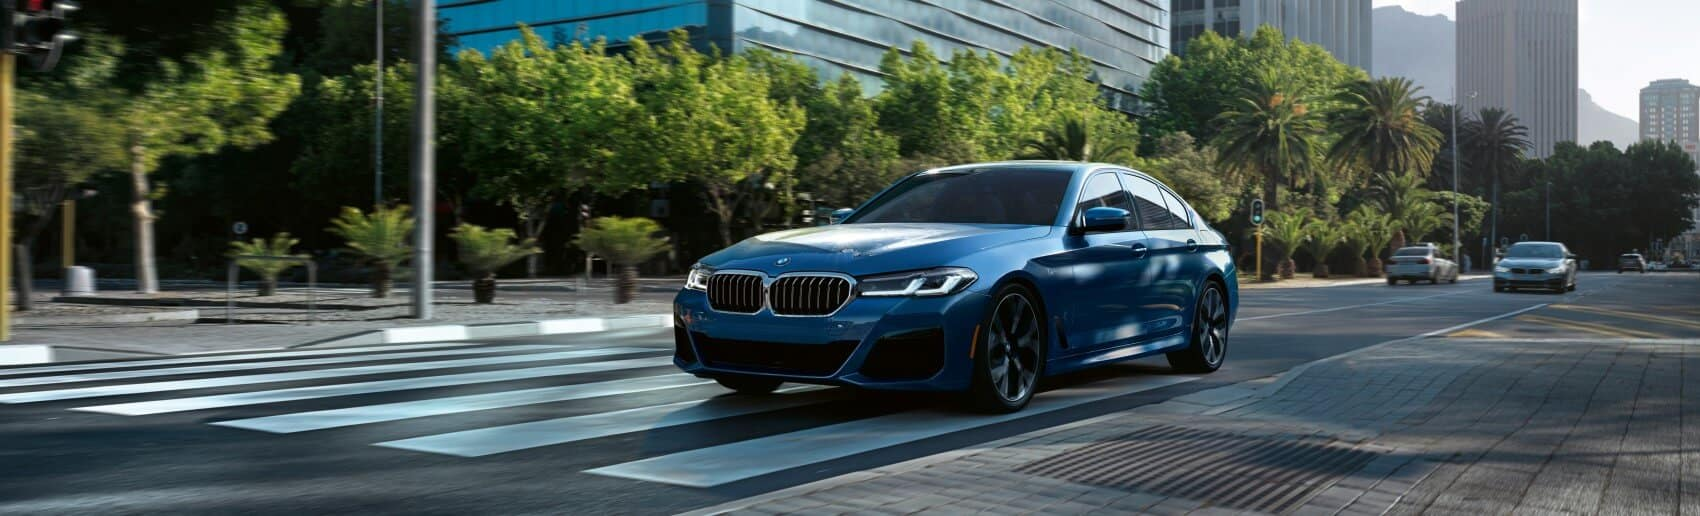 A new 2021 royal blue BMW 5 Series driving down the highway on a sunny day.